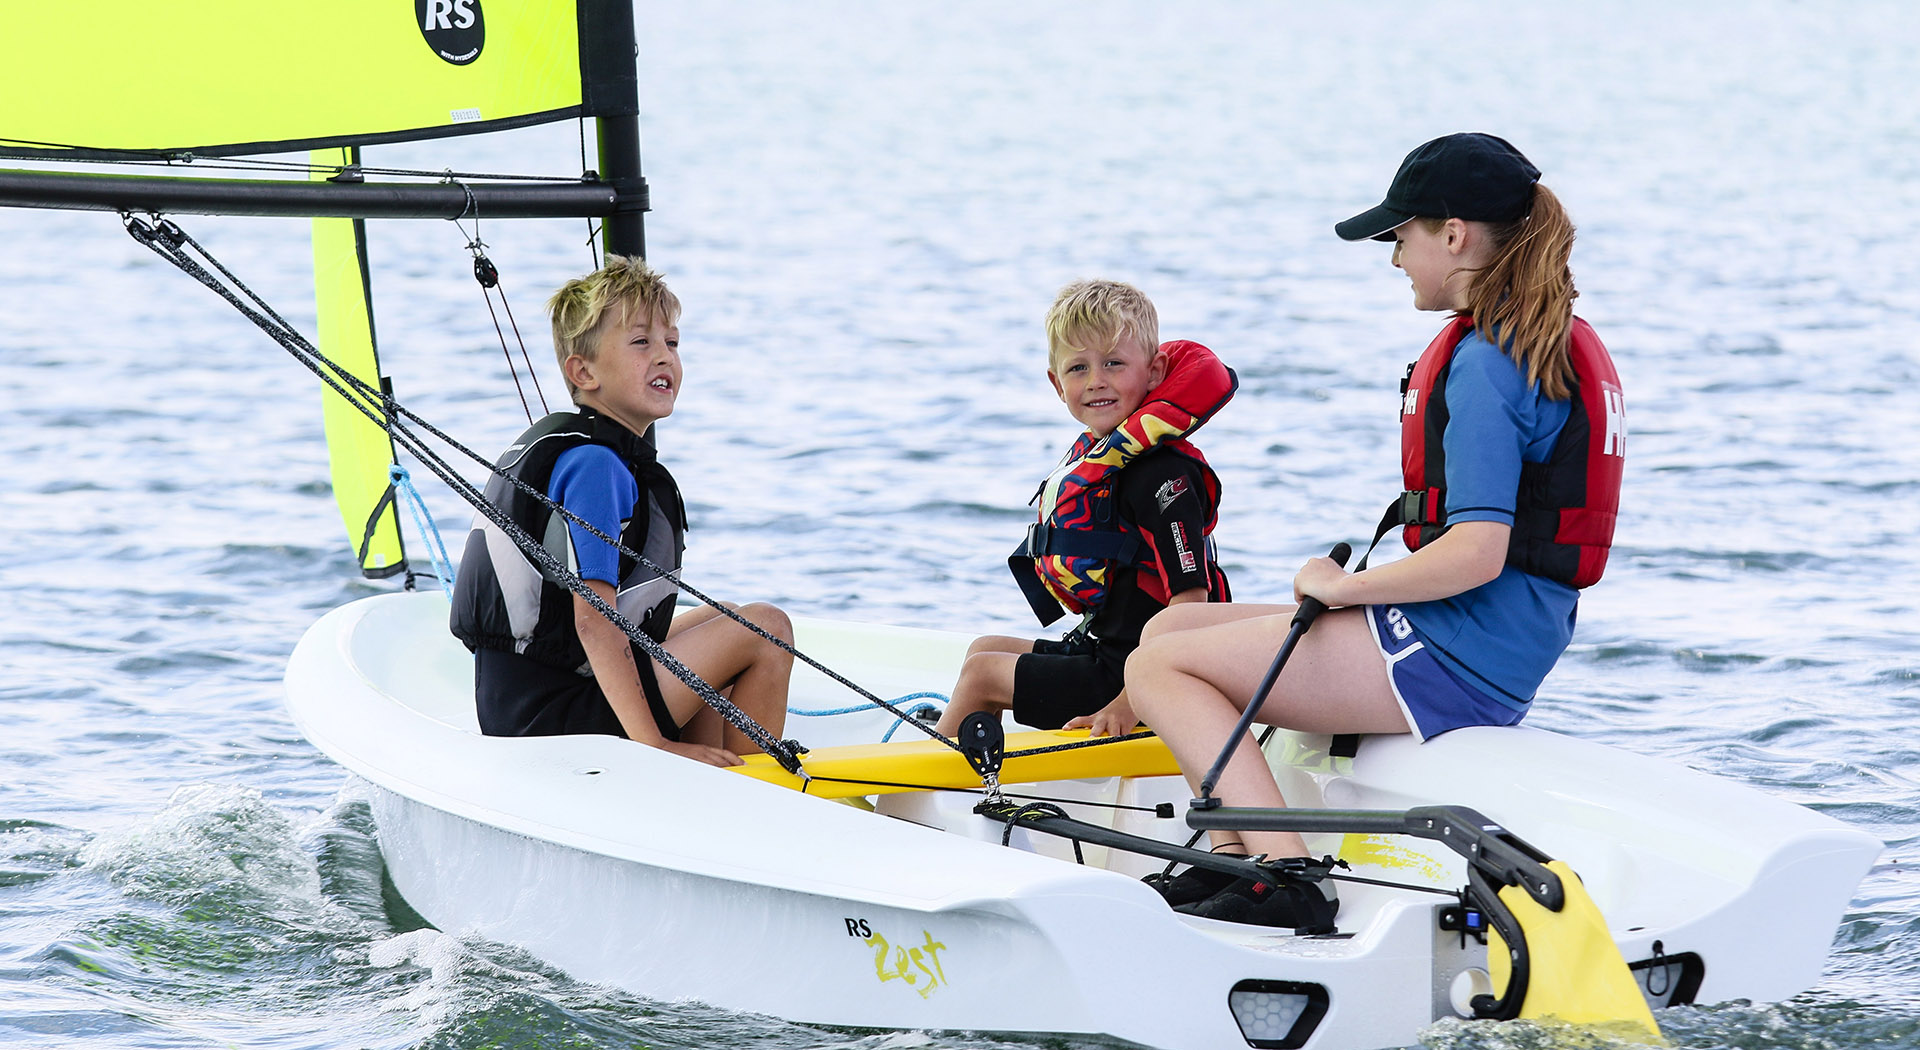 The RS Zest is easy to sail, highly practical for training and gives confidence-inspiring fun for families.